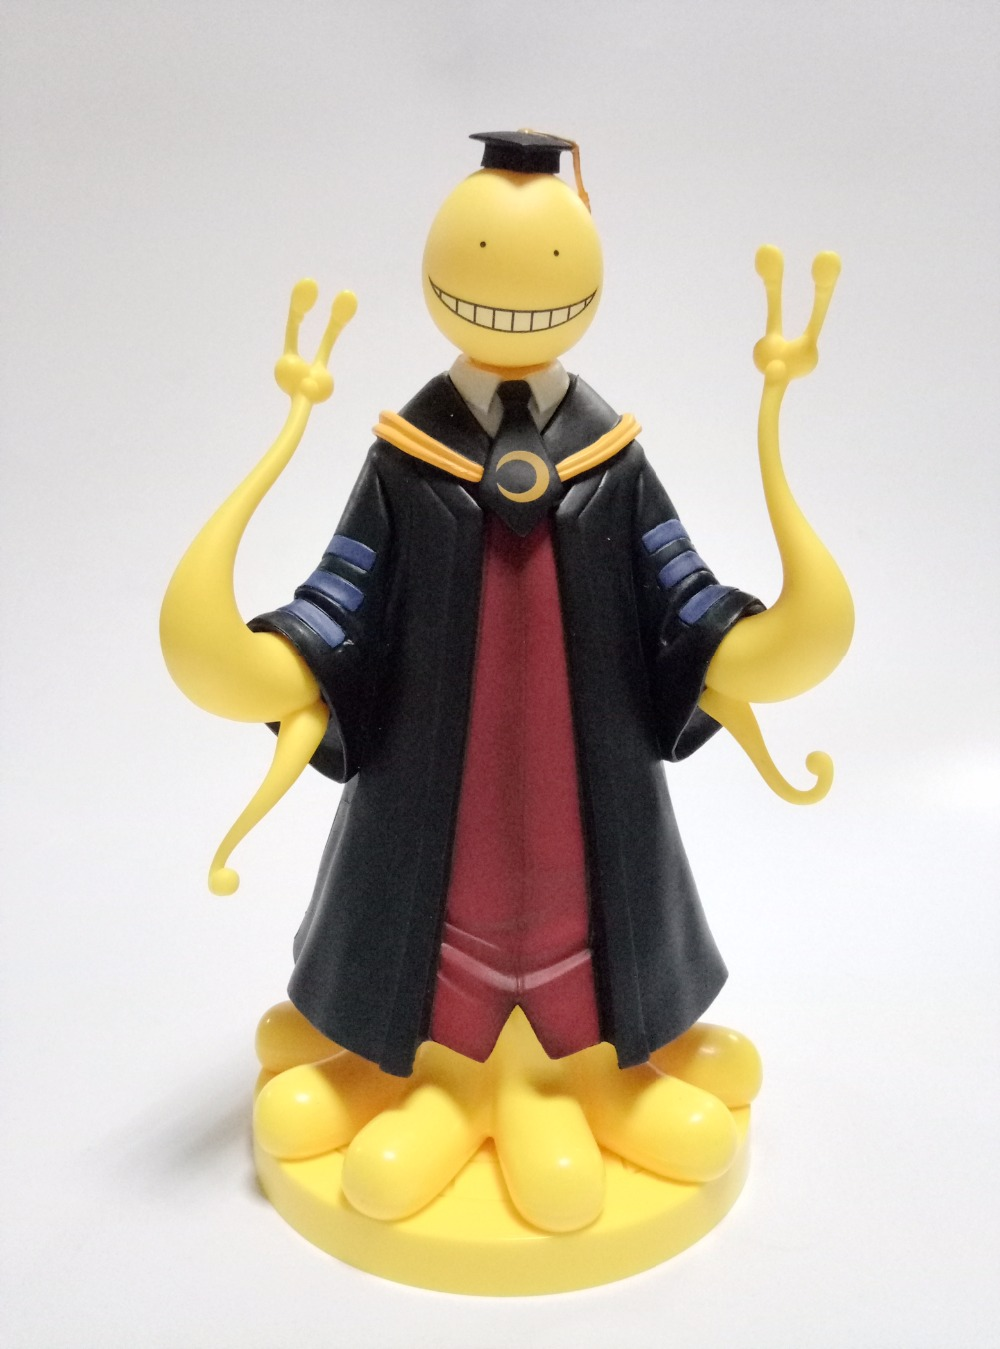 Korosensei Assassination Classroom DXF Original Loose Package Figure KORO Sensei 17CM PVC Action Figure Collectible Toy купить недорого в Москве